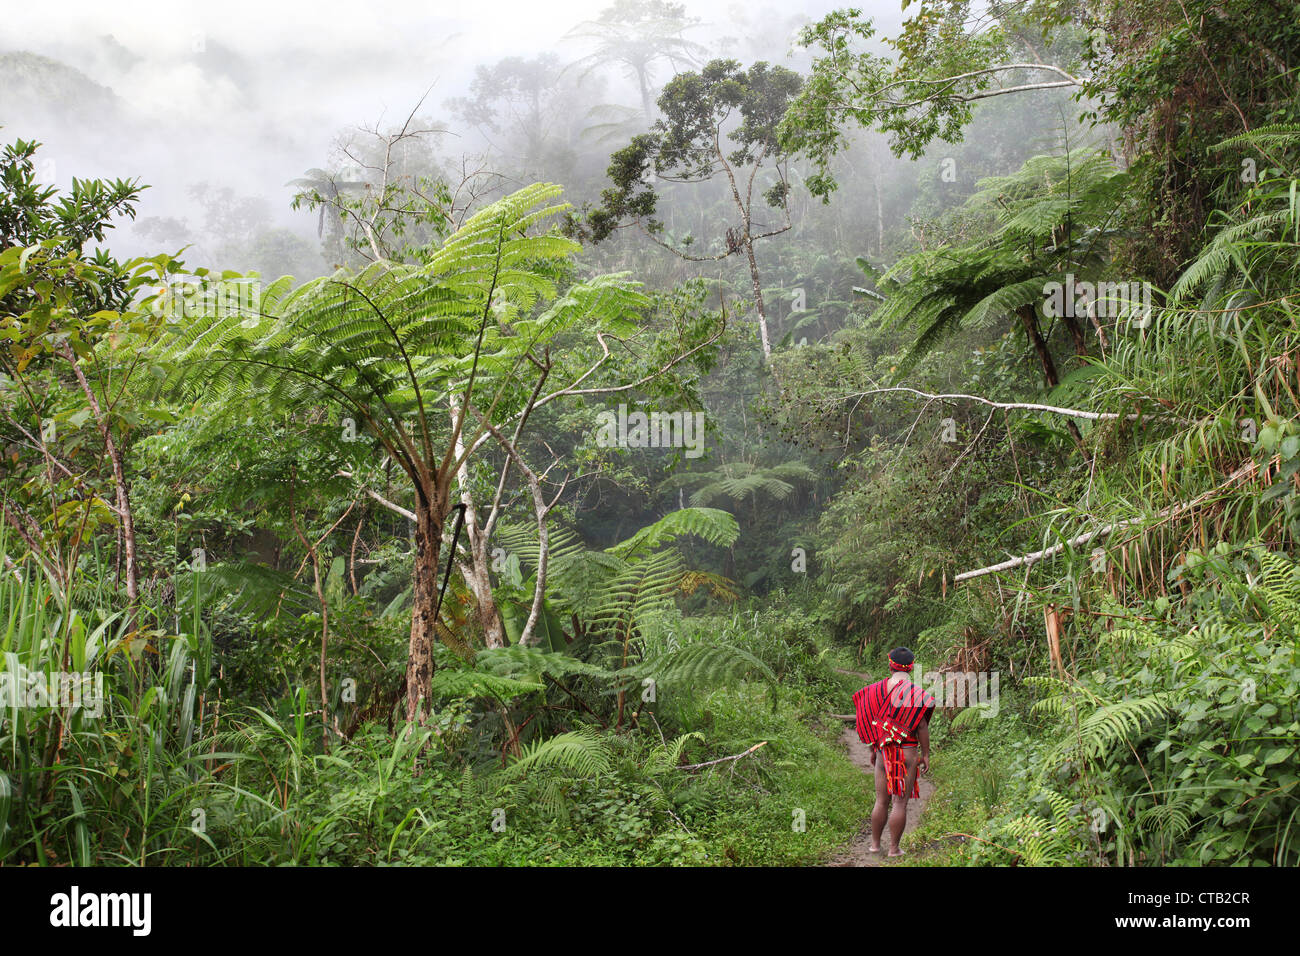 Ifugao man in traditional clothes in jungles, Banaue, Ifugao, Luzon Island, Philippines, Asia - Stock Image